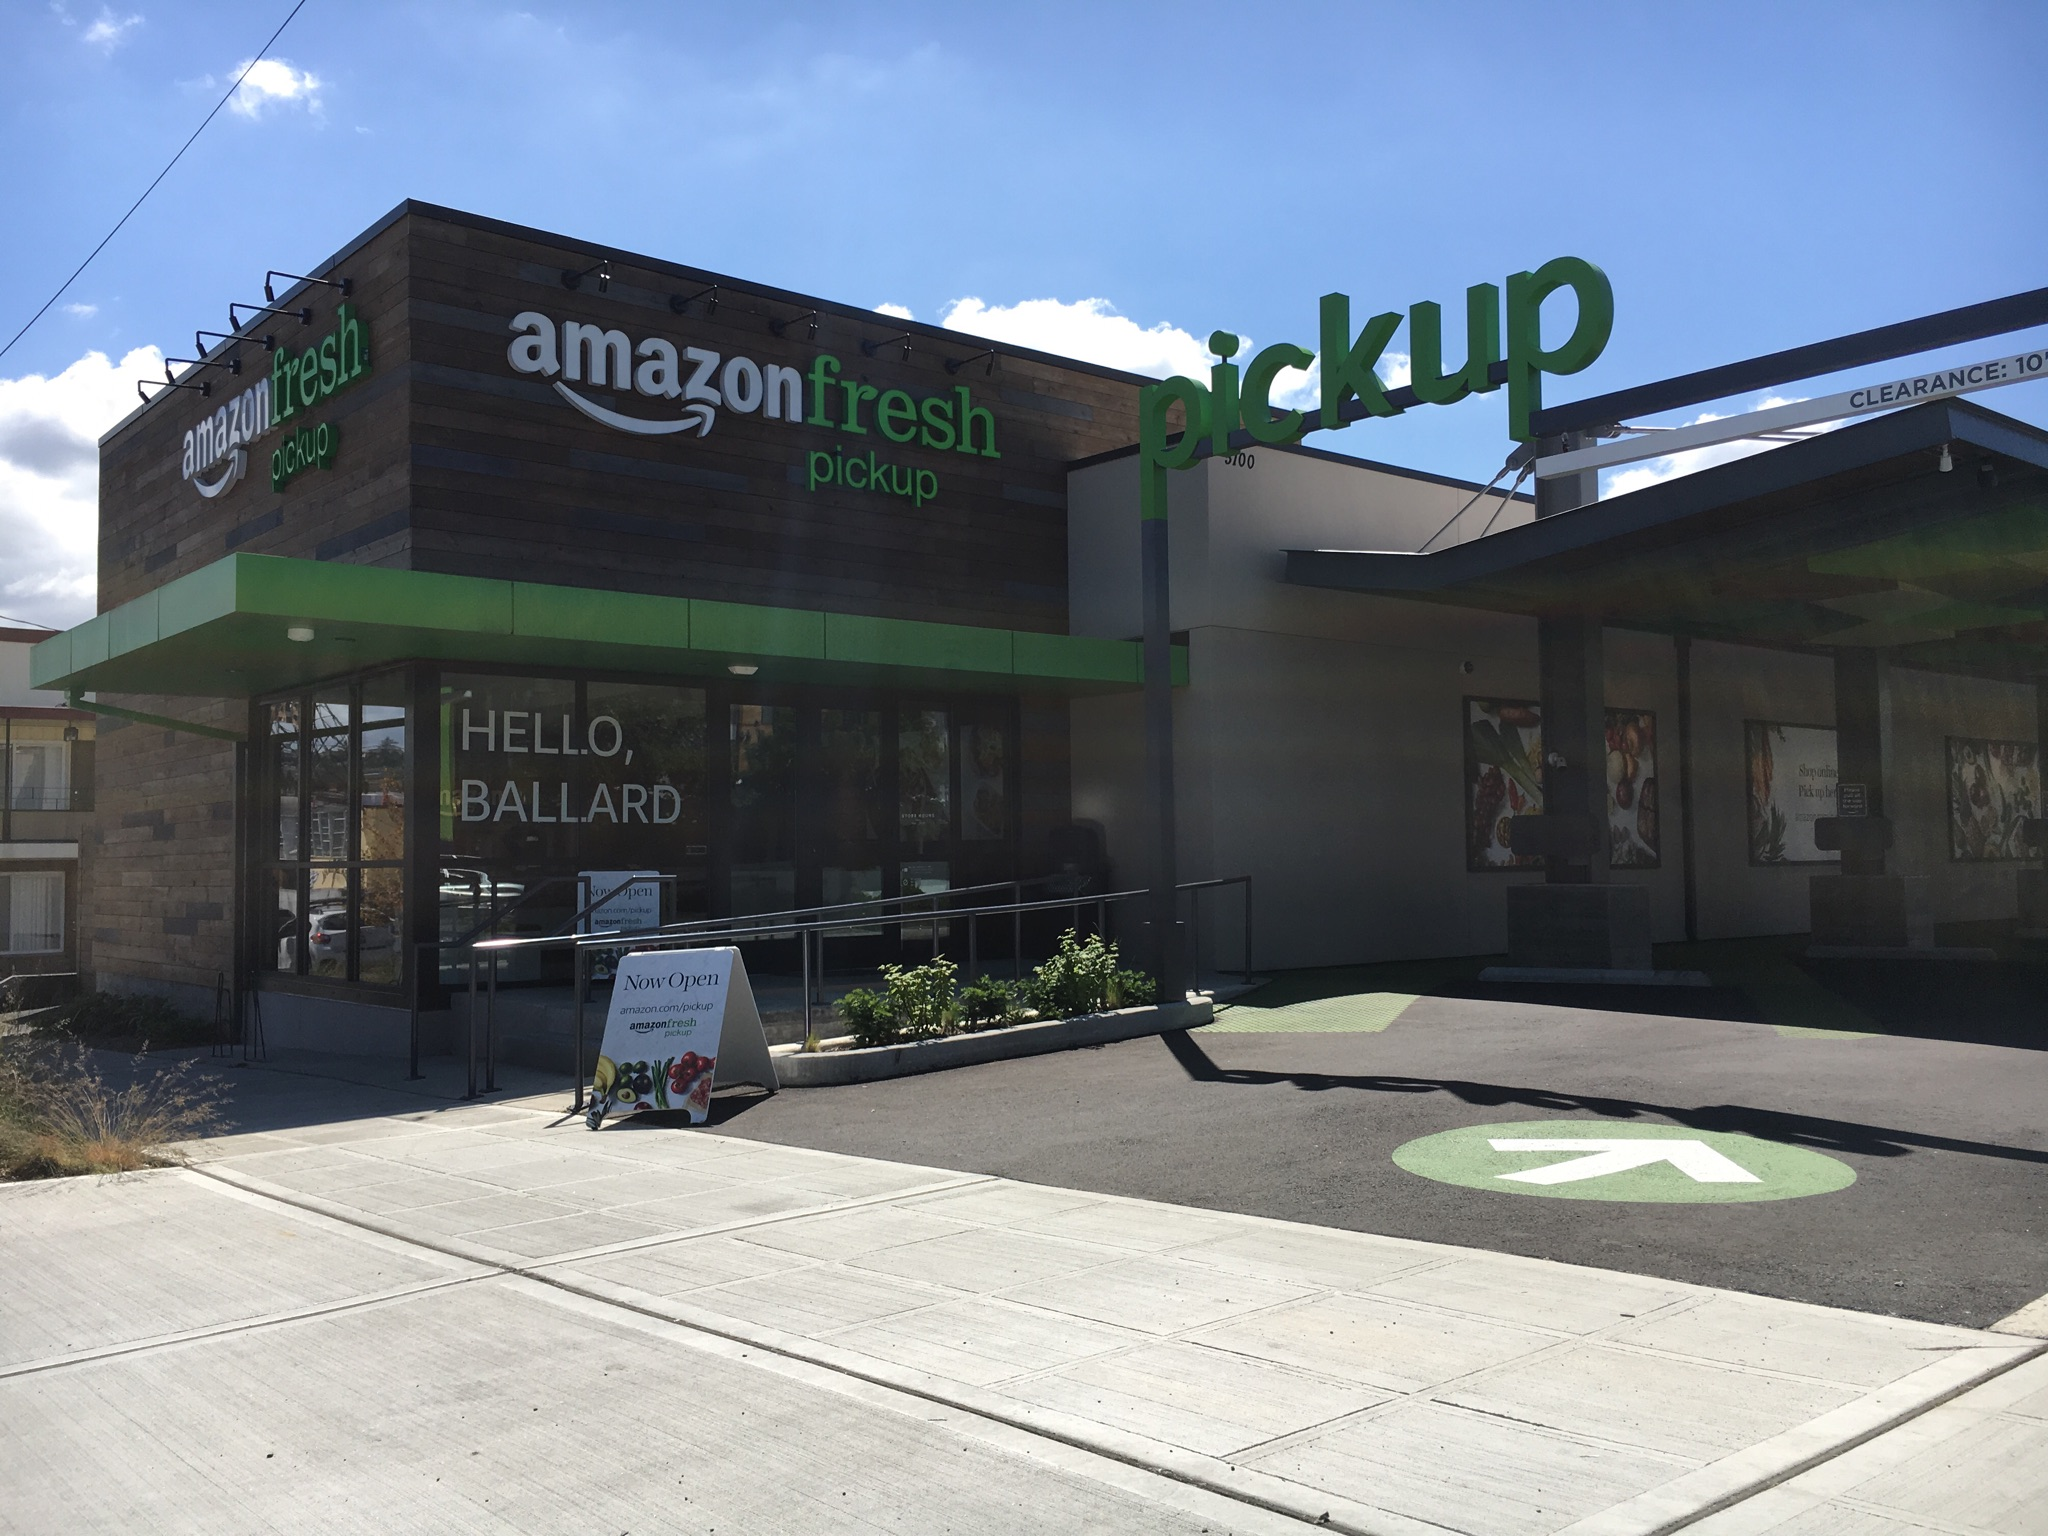 kuow - what amazonfresh means for traditional grocery stores